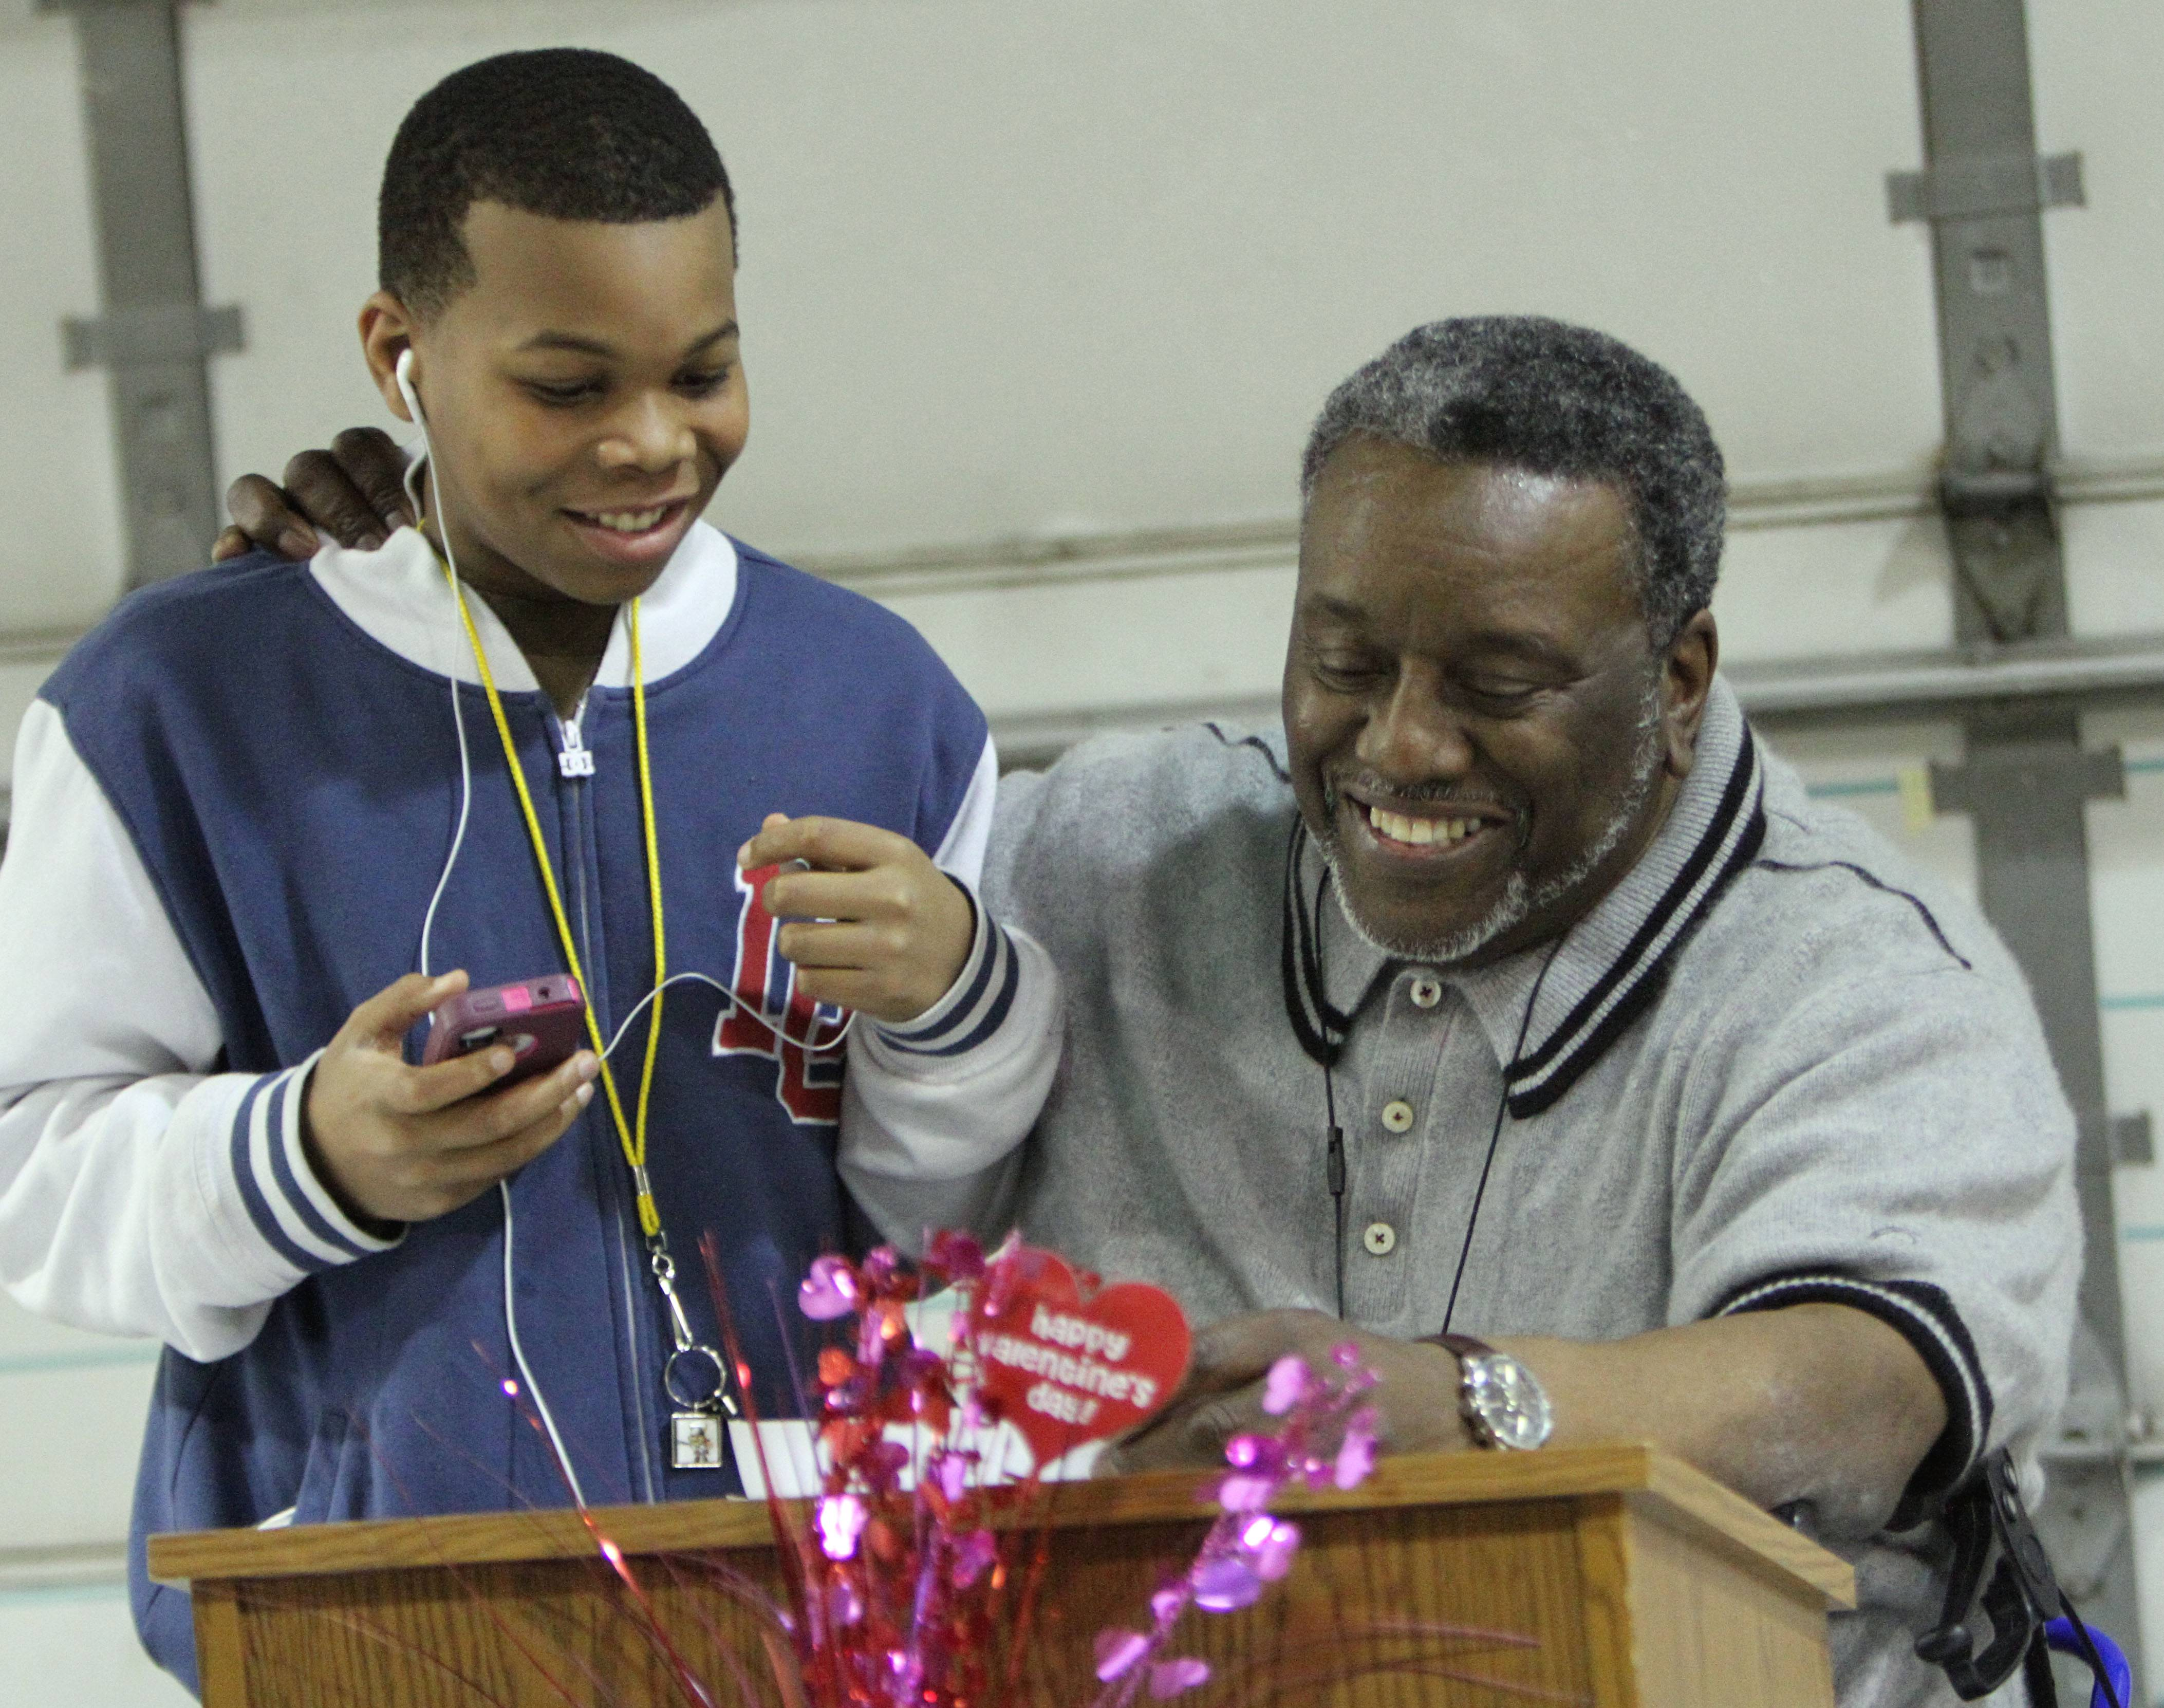 Milton Whitington, 63, of Waukegan thanks the people responsible for his new car. The refurbished Dodge Neon was presented to Whittington Wednesday through a program called Recycled Ride sponsored by Carstar in Mundelein and Esurance. Whittington's 13-year-old grandson Jaden Whittington, left, lives with him.